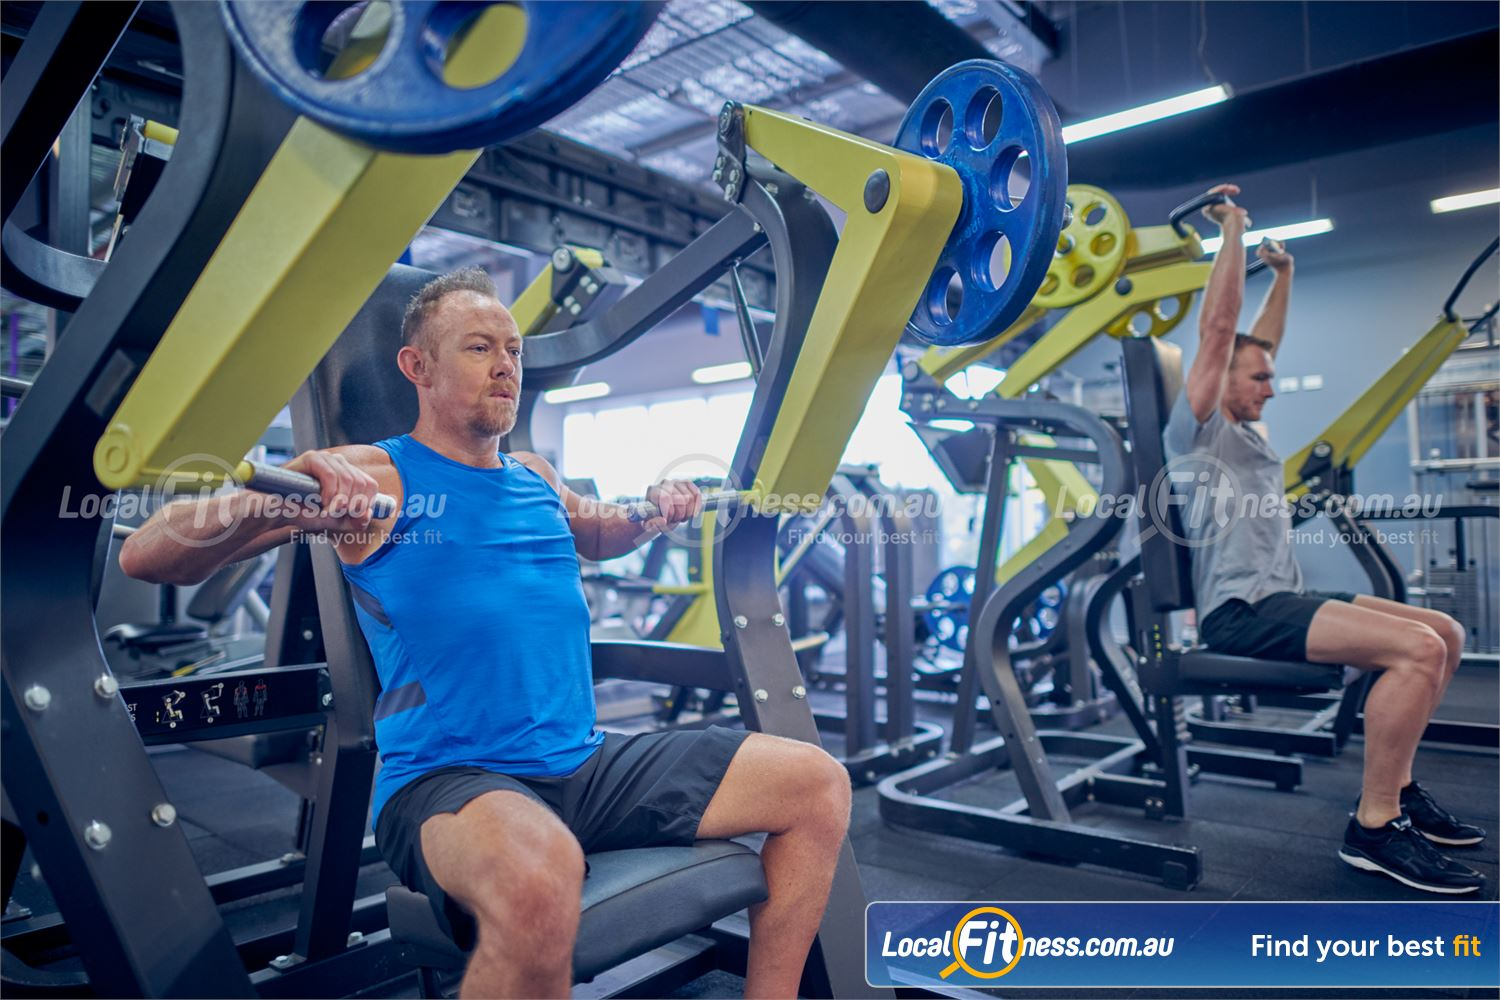 Element Fitness Health Club Near Mitcham Enjoy only the best from Technogym at Elements Nunawading gym.